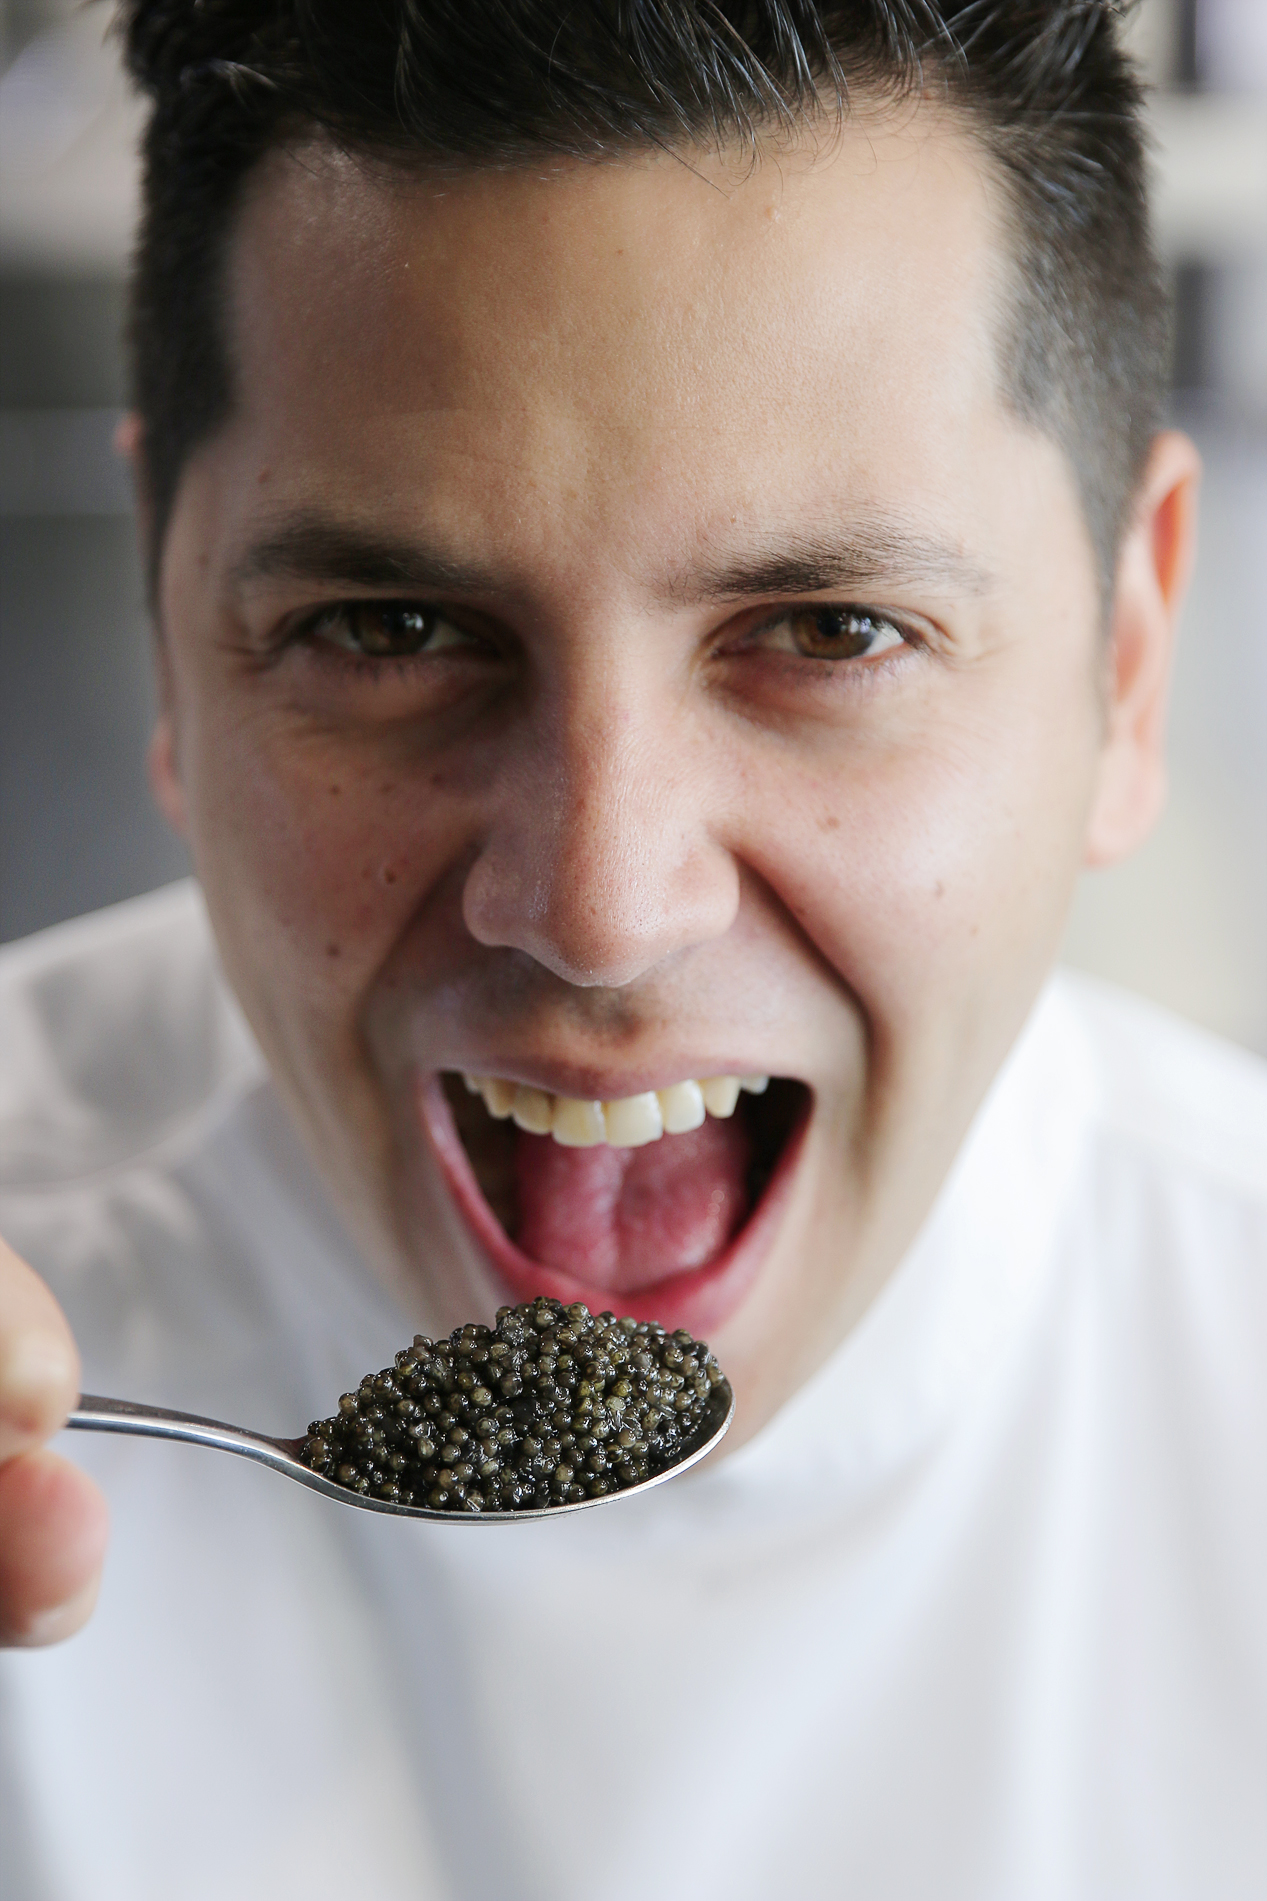 Sr-Erreka-Photo_Chef-Diego-Gallegos-SOLLO-Restaurante-chef-del-caviar.jpg